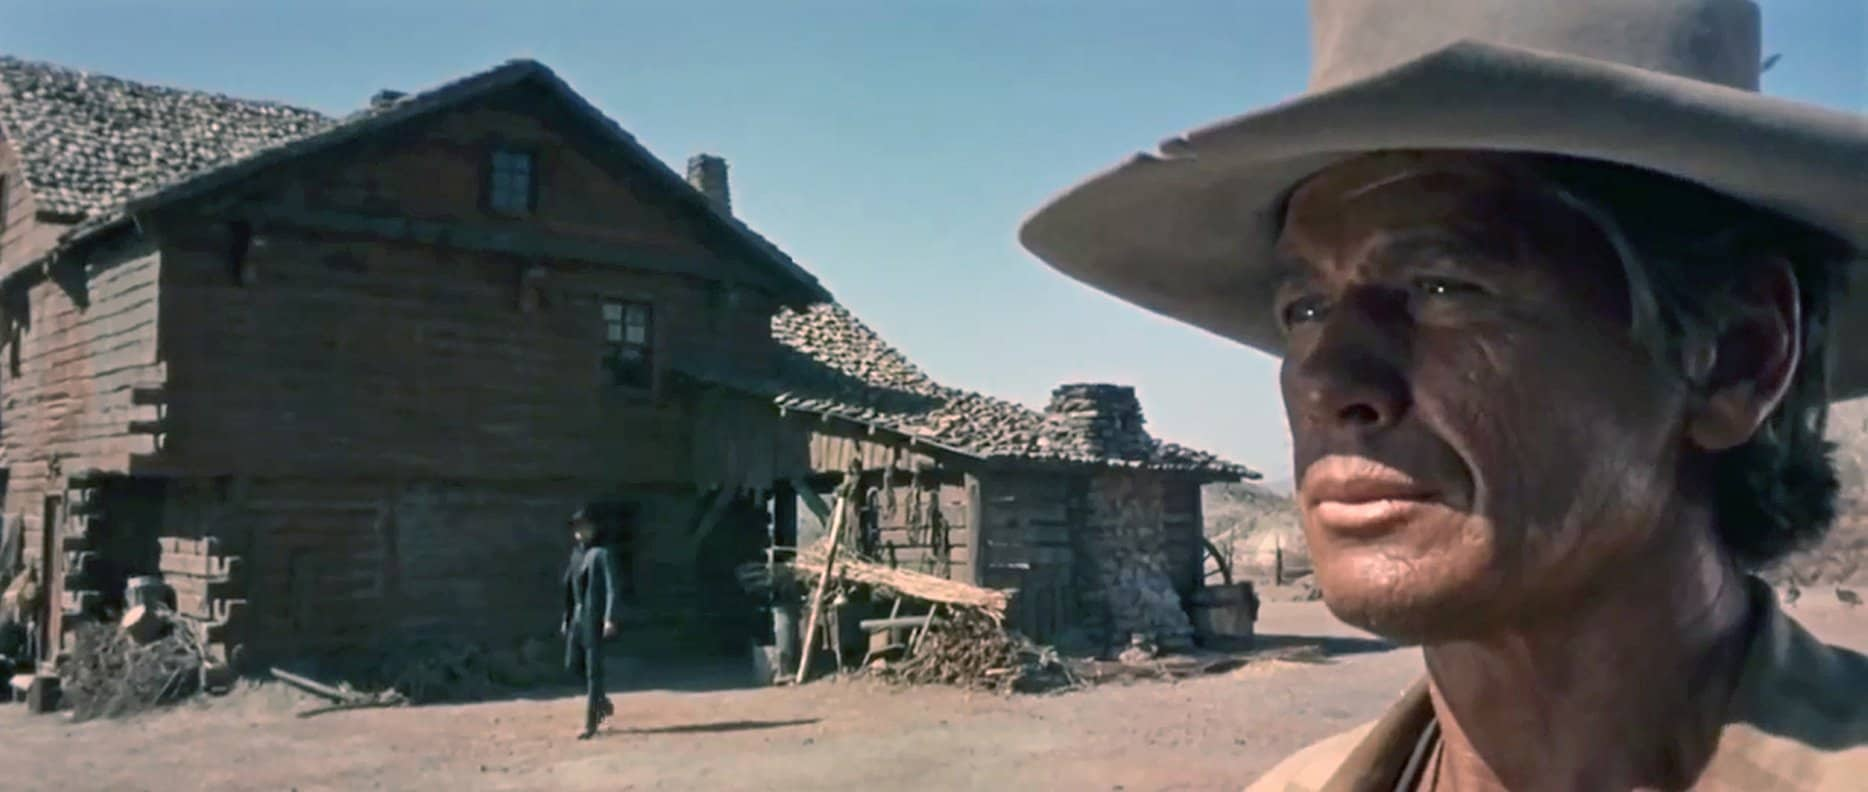 Once Upon A Time In The West: Shooting A Masterpiece By Sir Christopher Frayling